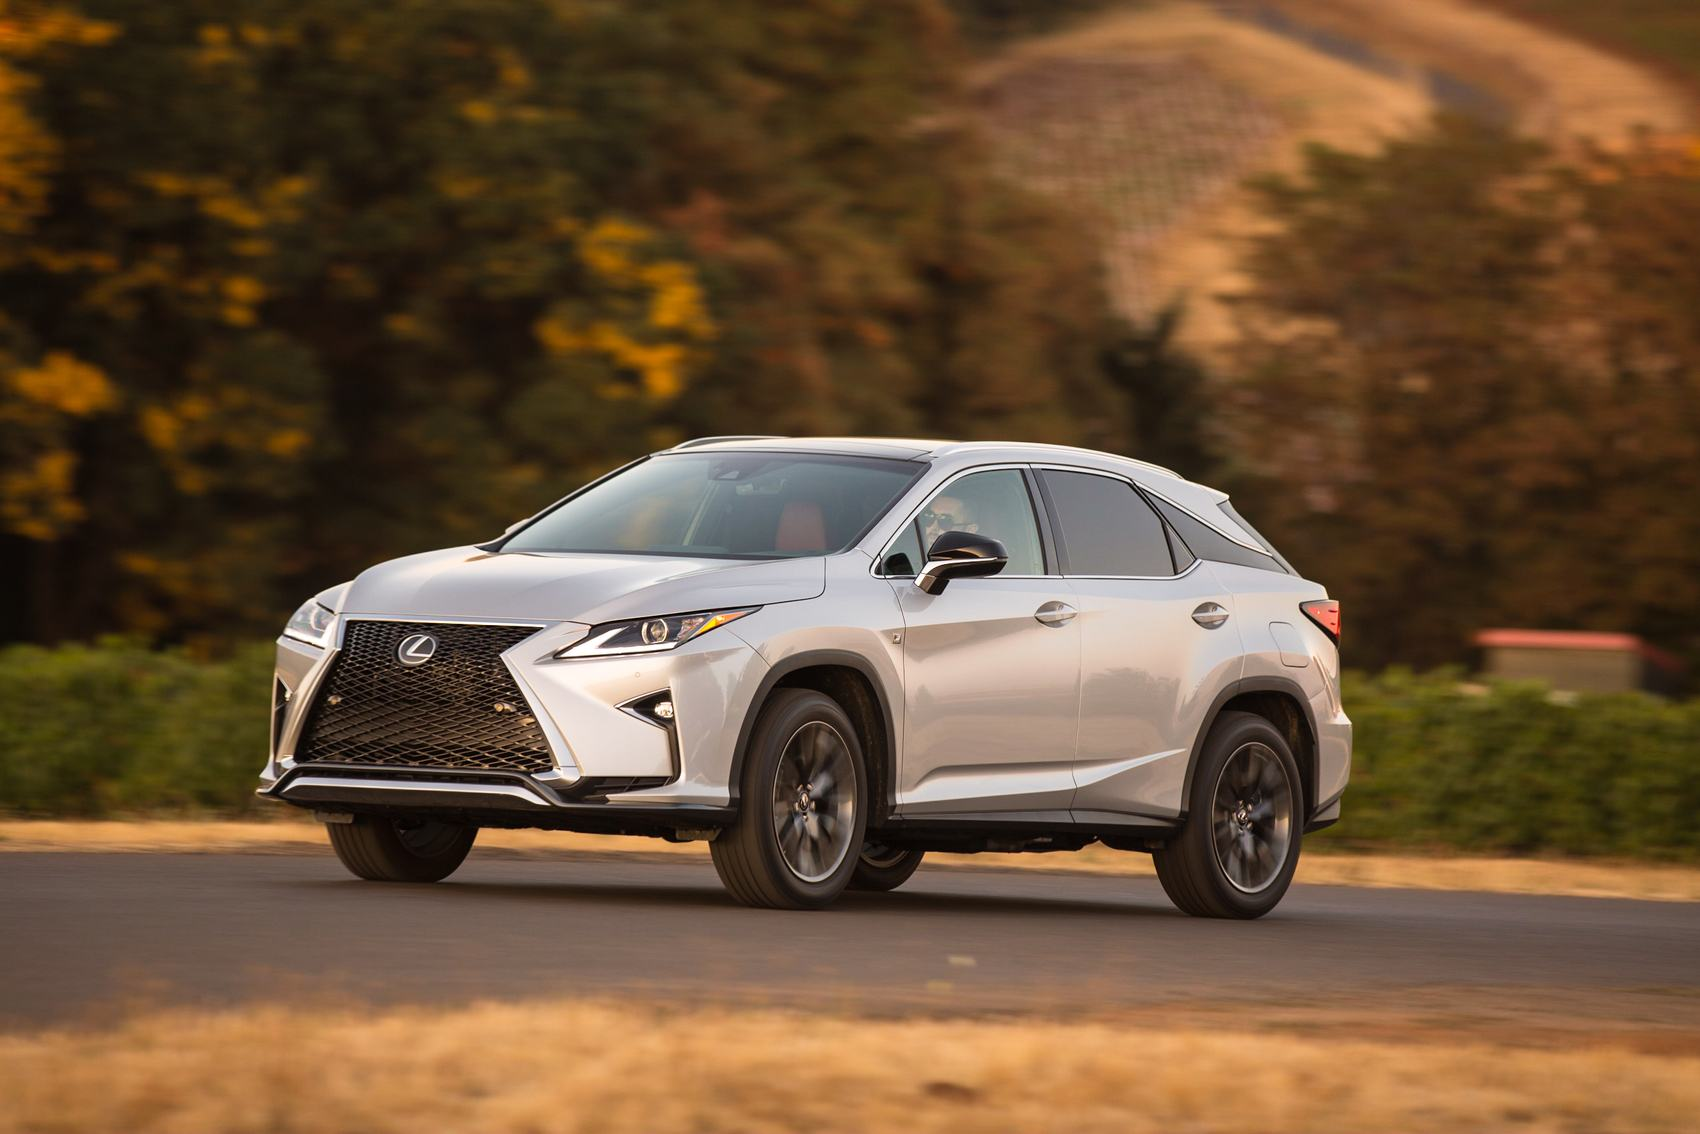 2019 Lexus Rx 350 F Sport Review Stylish Amp Tech Focused